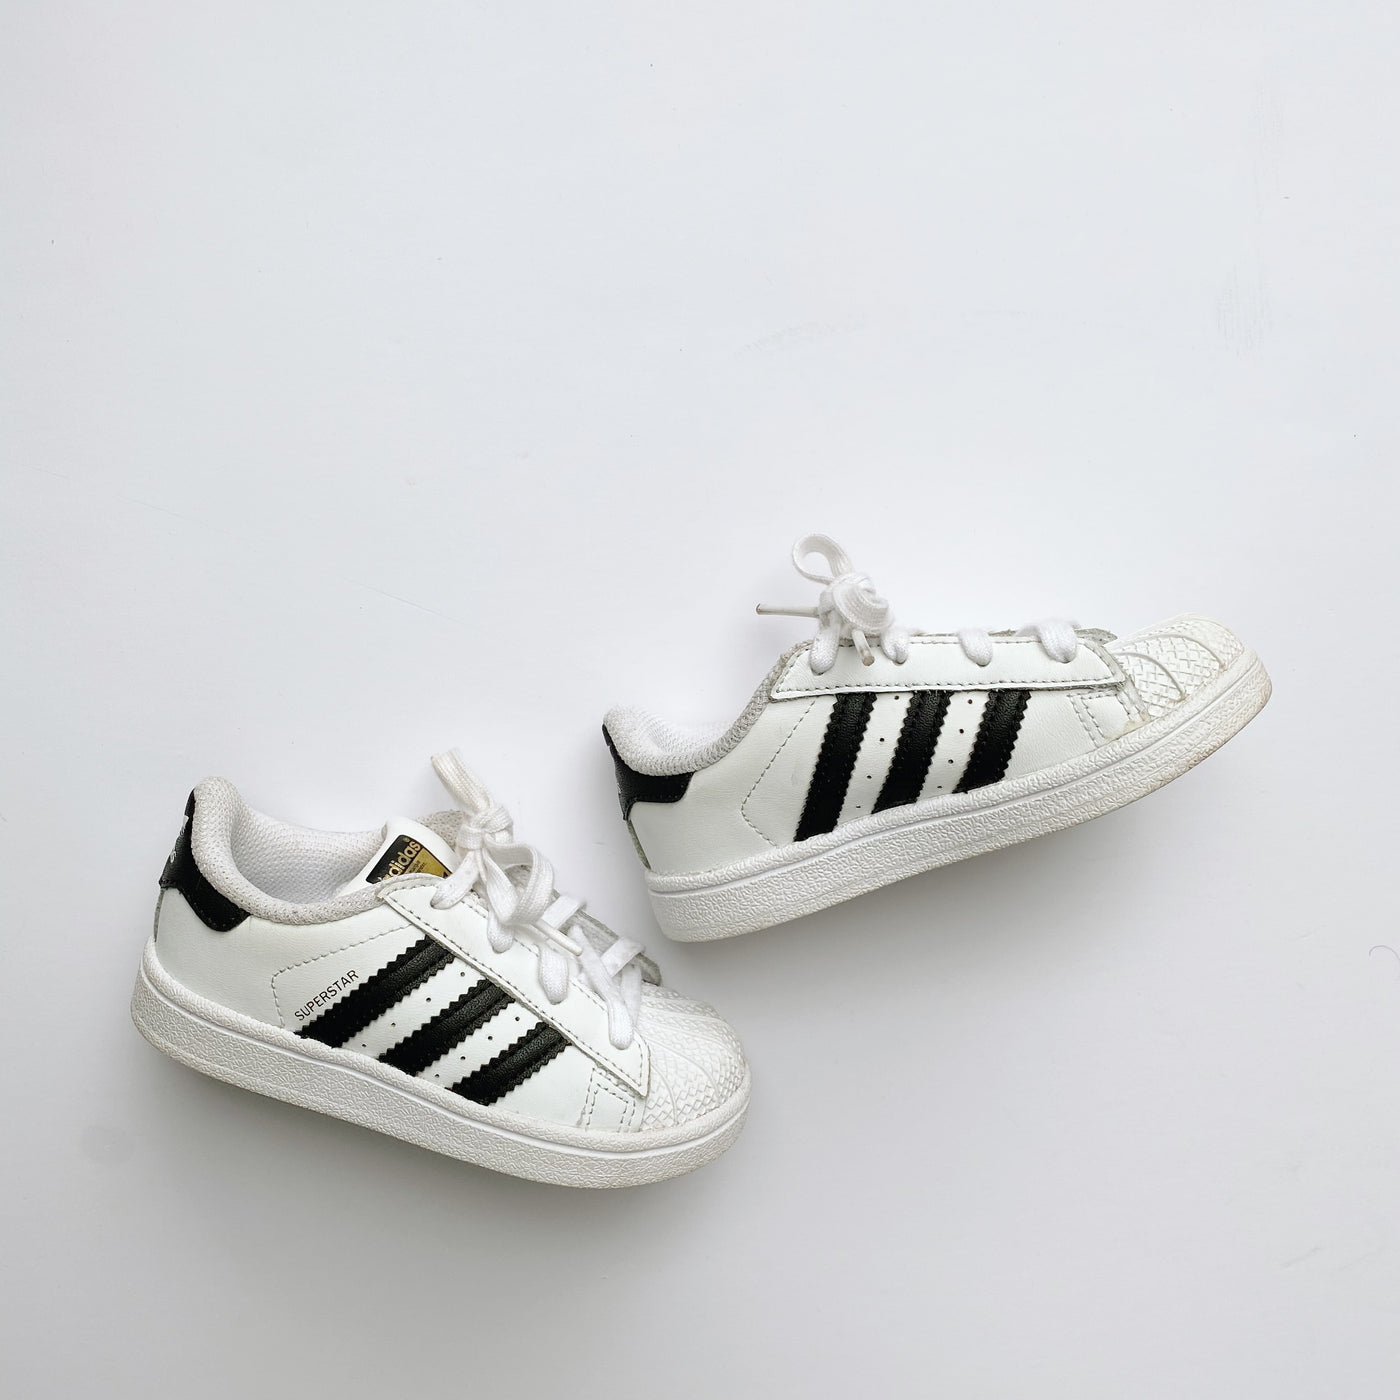 Adidas Superstar Sneakers / Toddler 7